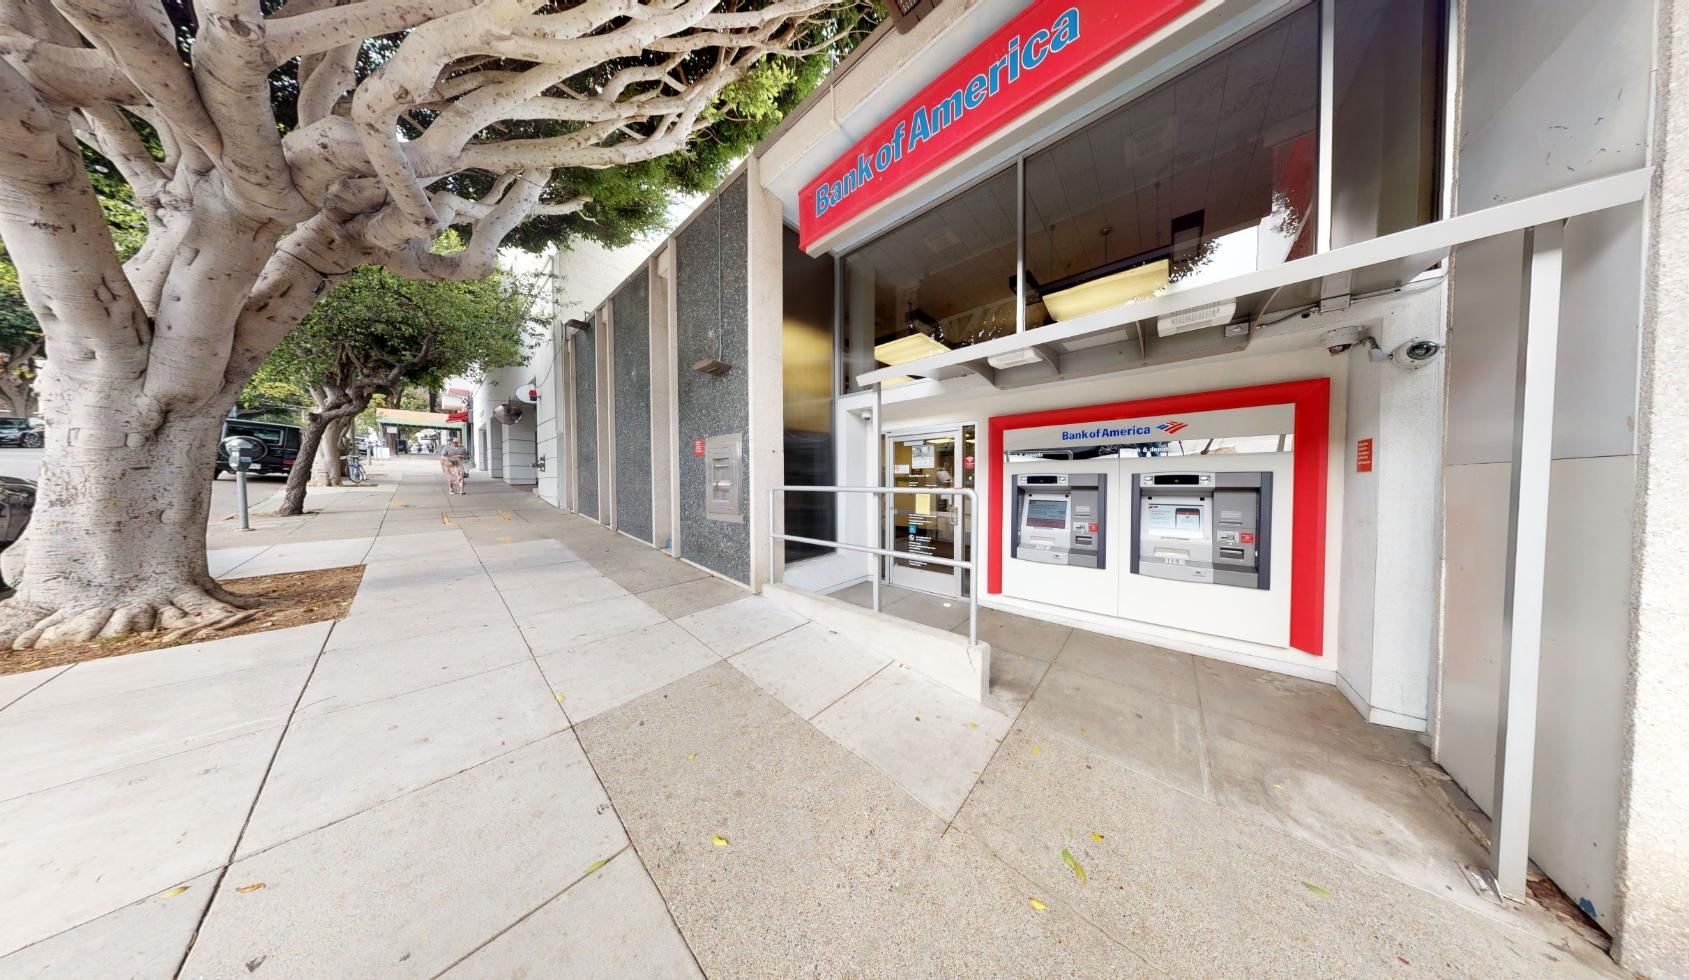 Bank of America financial center with walk-up ATM   2310 Fillmore St, San Francisco, CA 94115